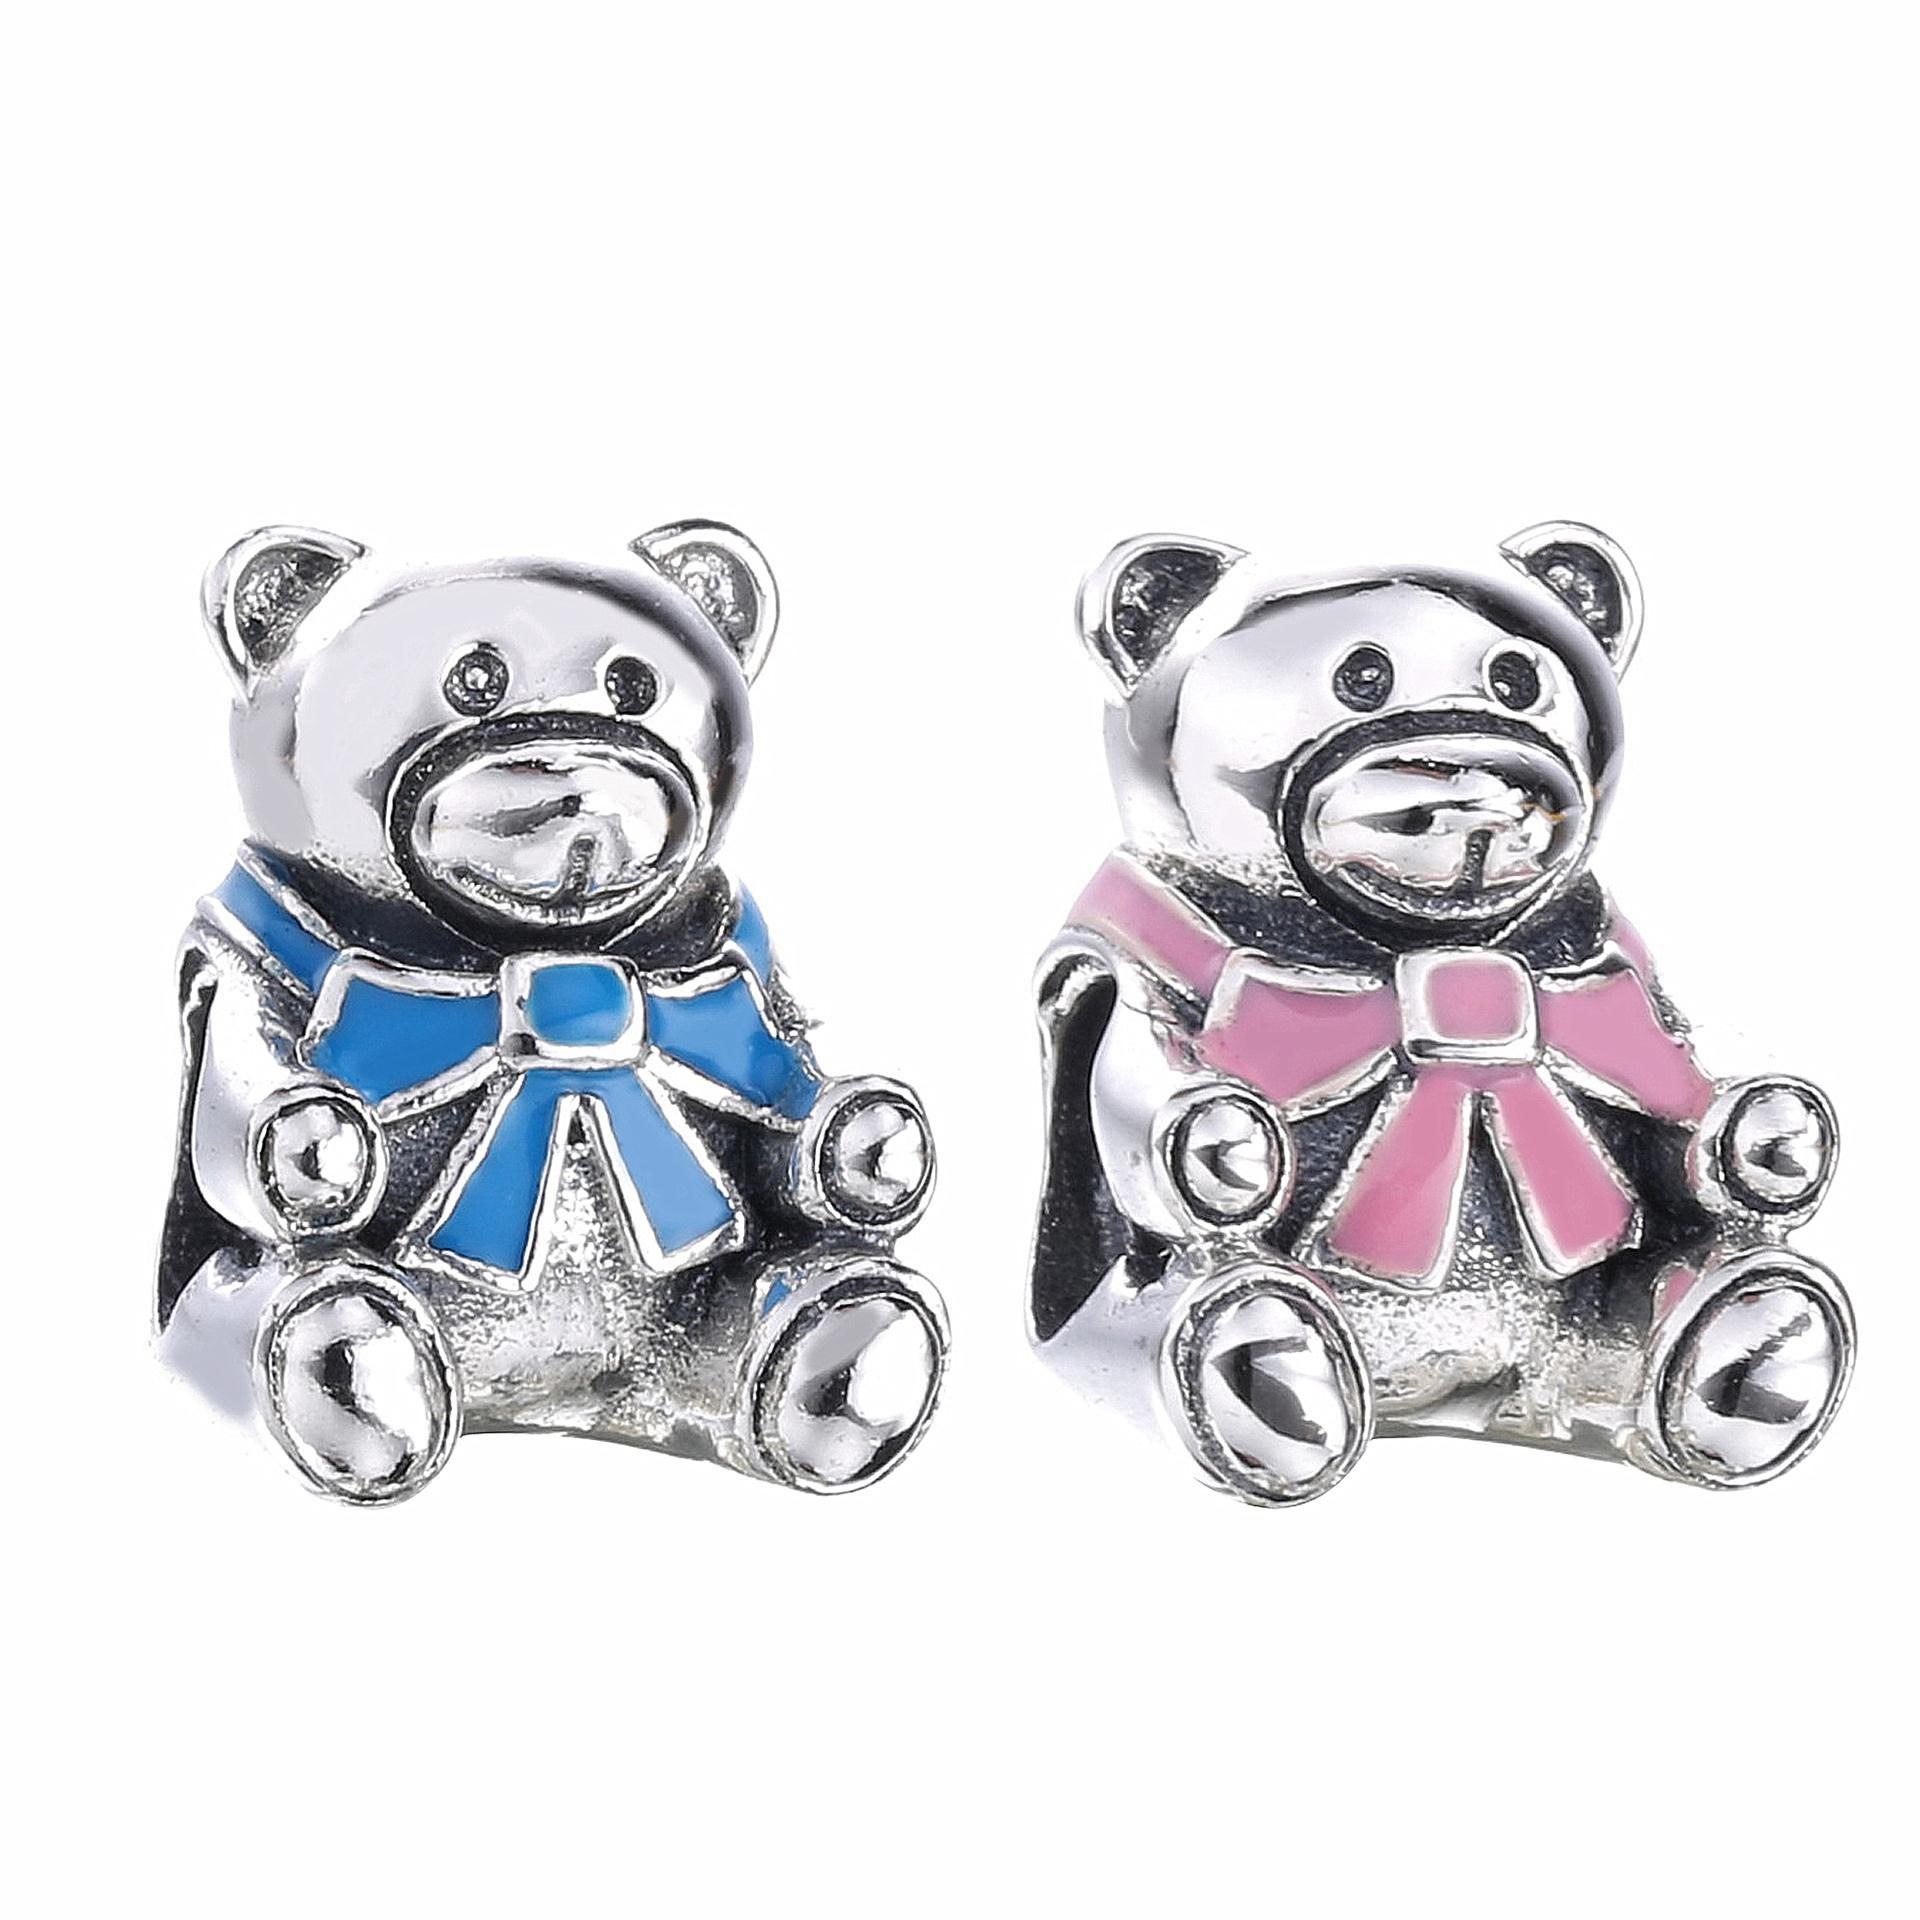 100% 925 Sterling Silver Girl Teddy Bear Charm Fit Original Pandora Bracelet & Necklace Authentic Women Jewelry Gift